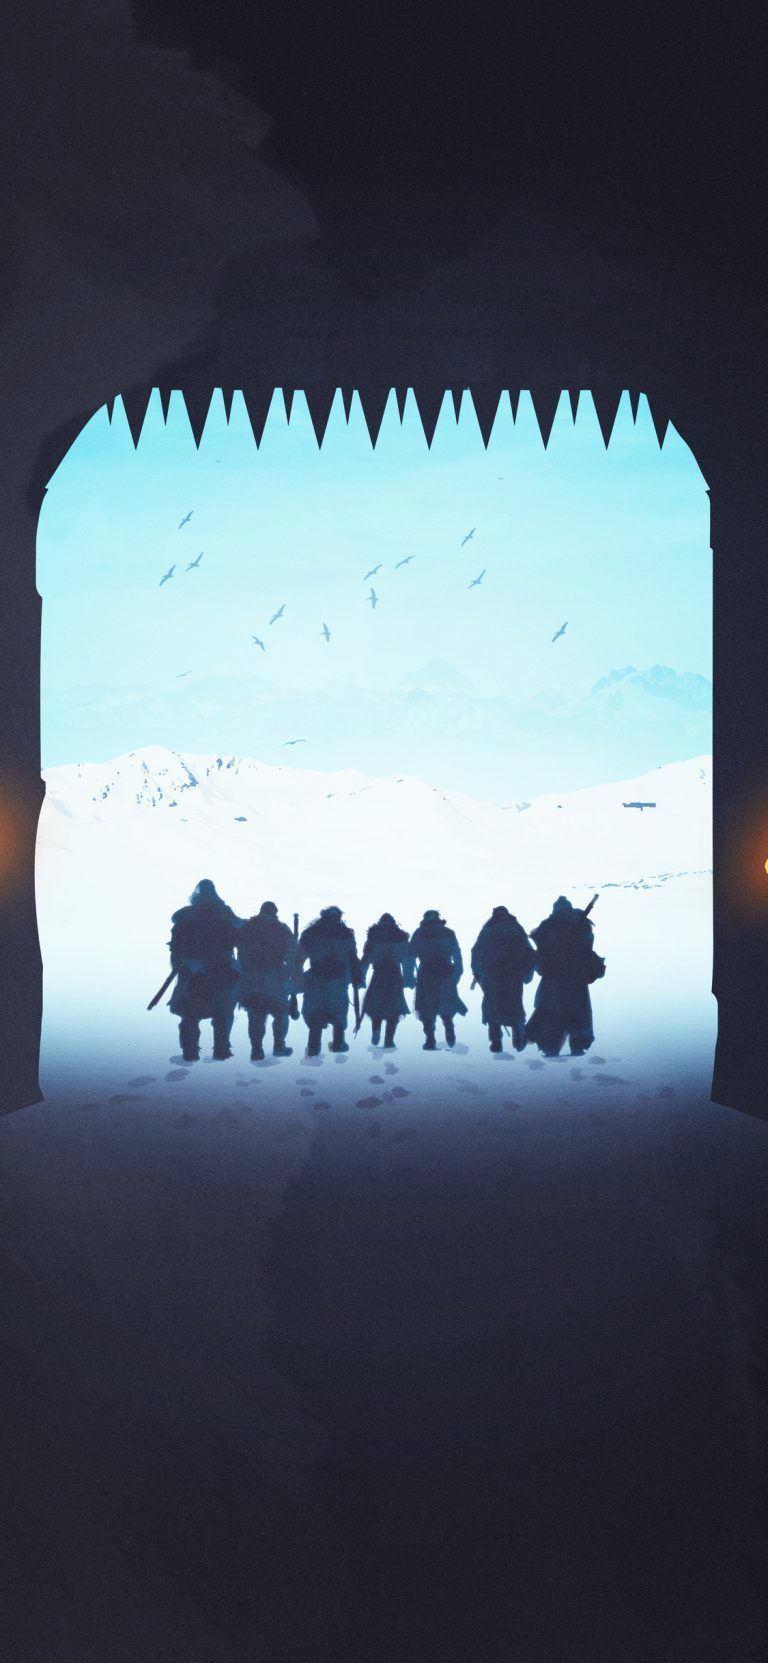 Game Of Thrones Night Watch The Wall Iphone Game Of Thrones Wallpaper 4k Wallpaper Iphone Iphone Wallpaper Iphone 7 Wallpapers